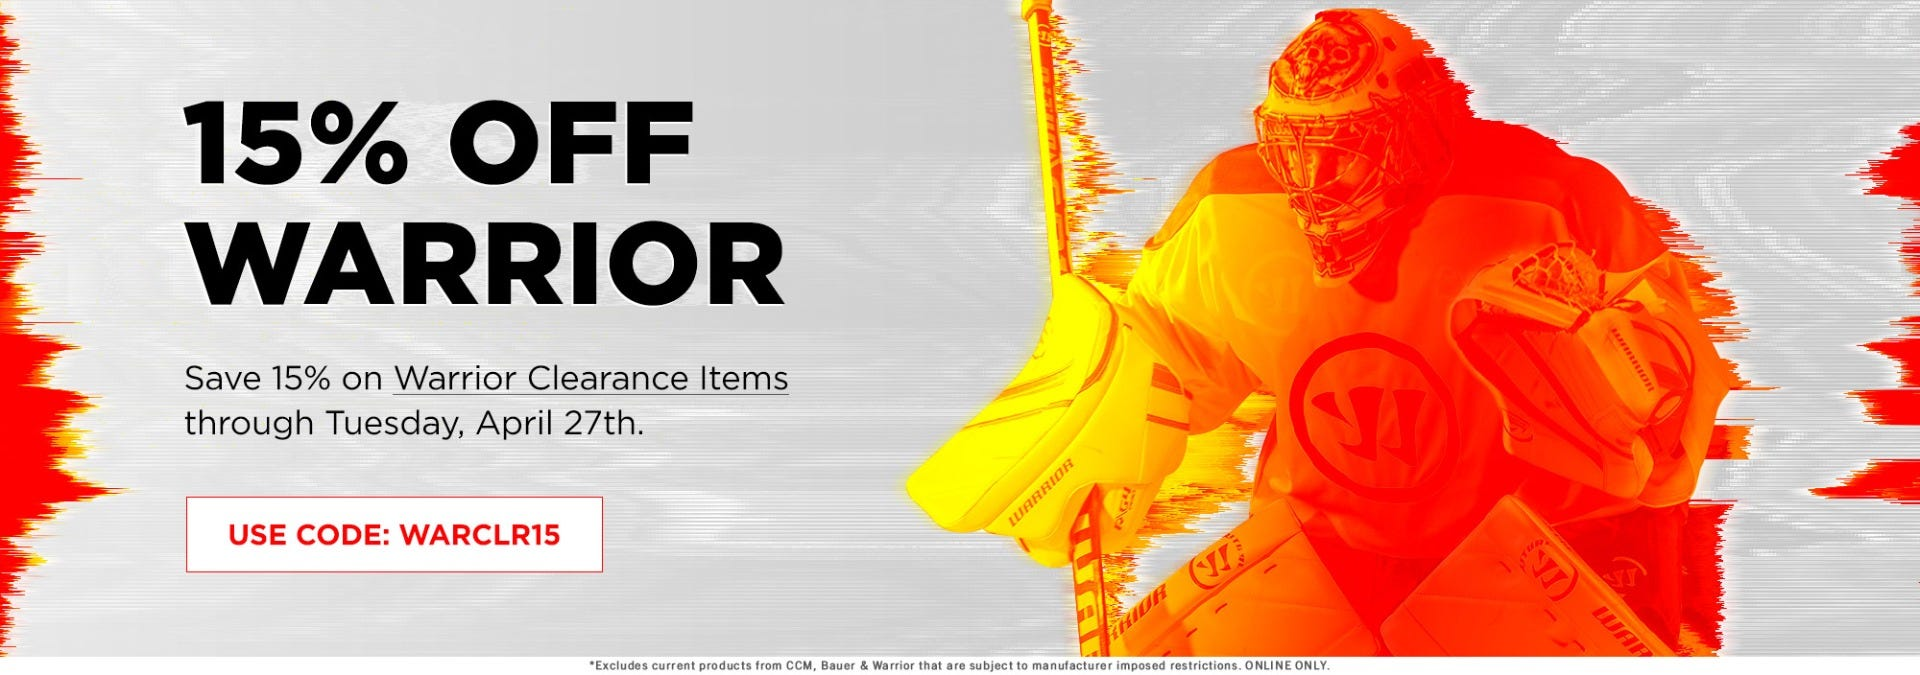 Warrior Clearance Sale: Take an additional 15% off